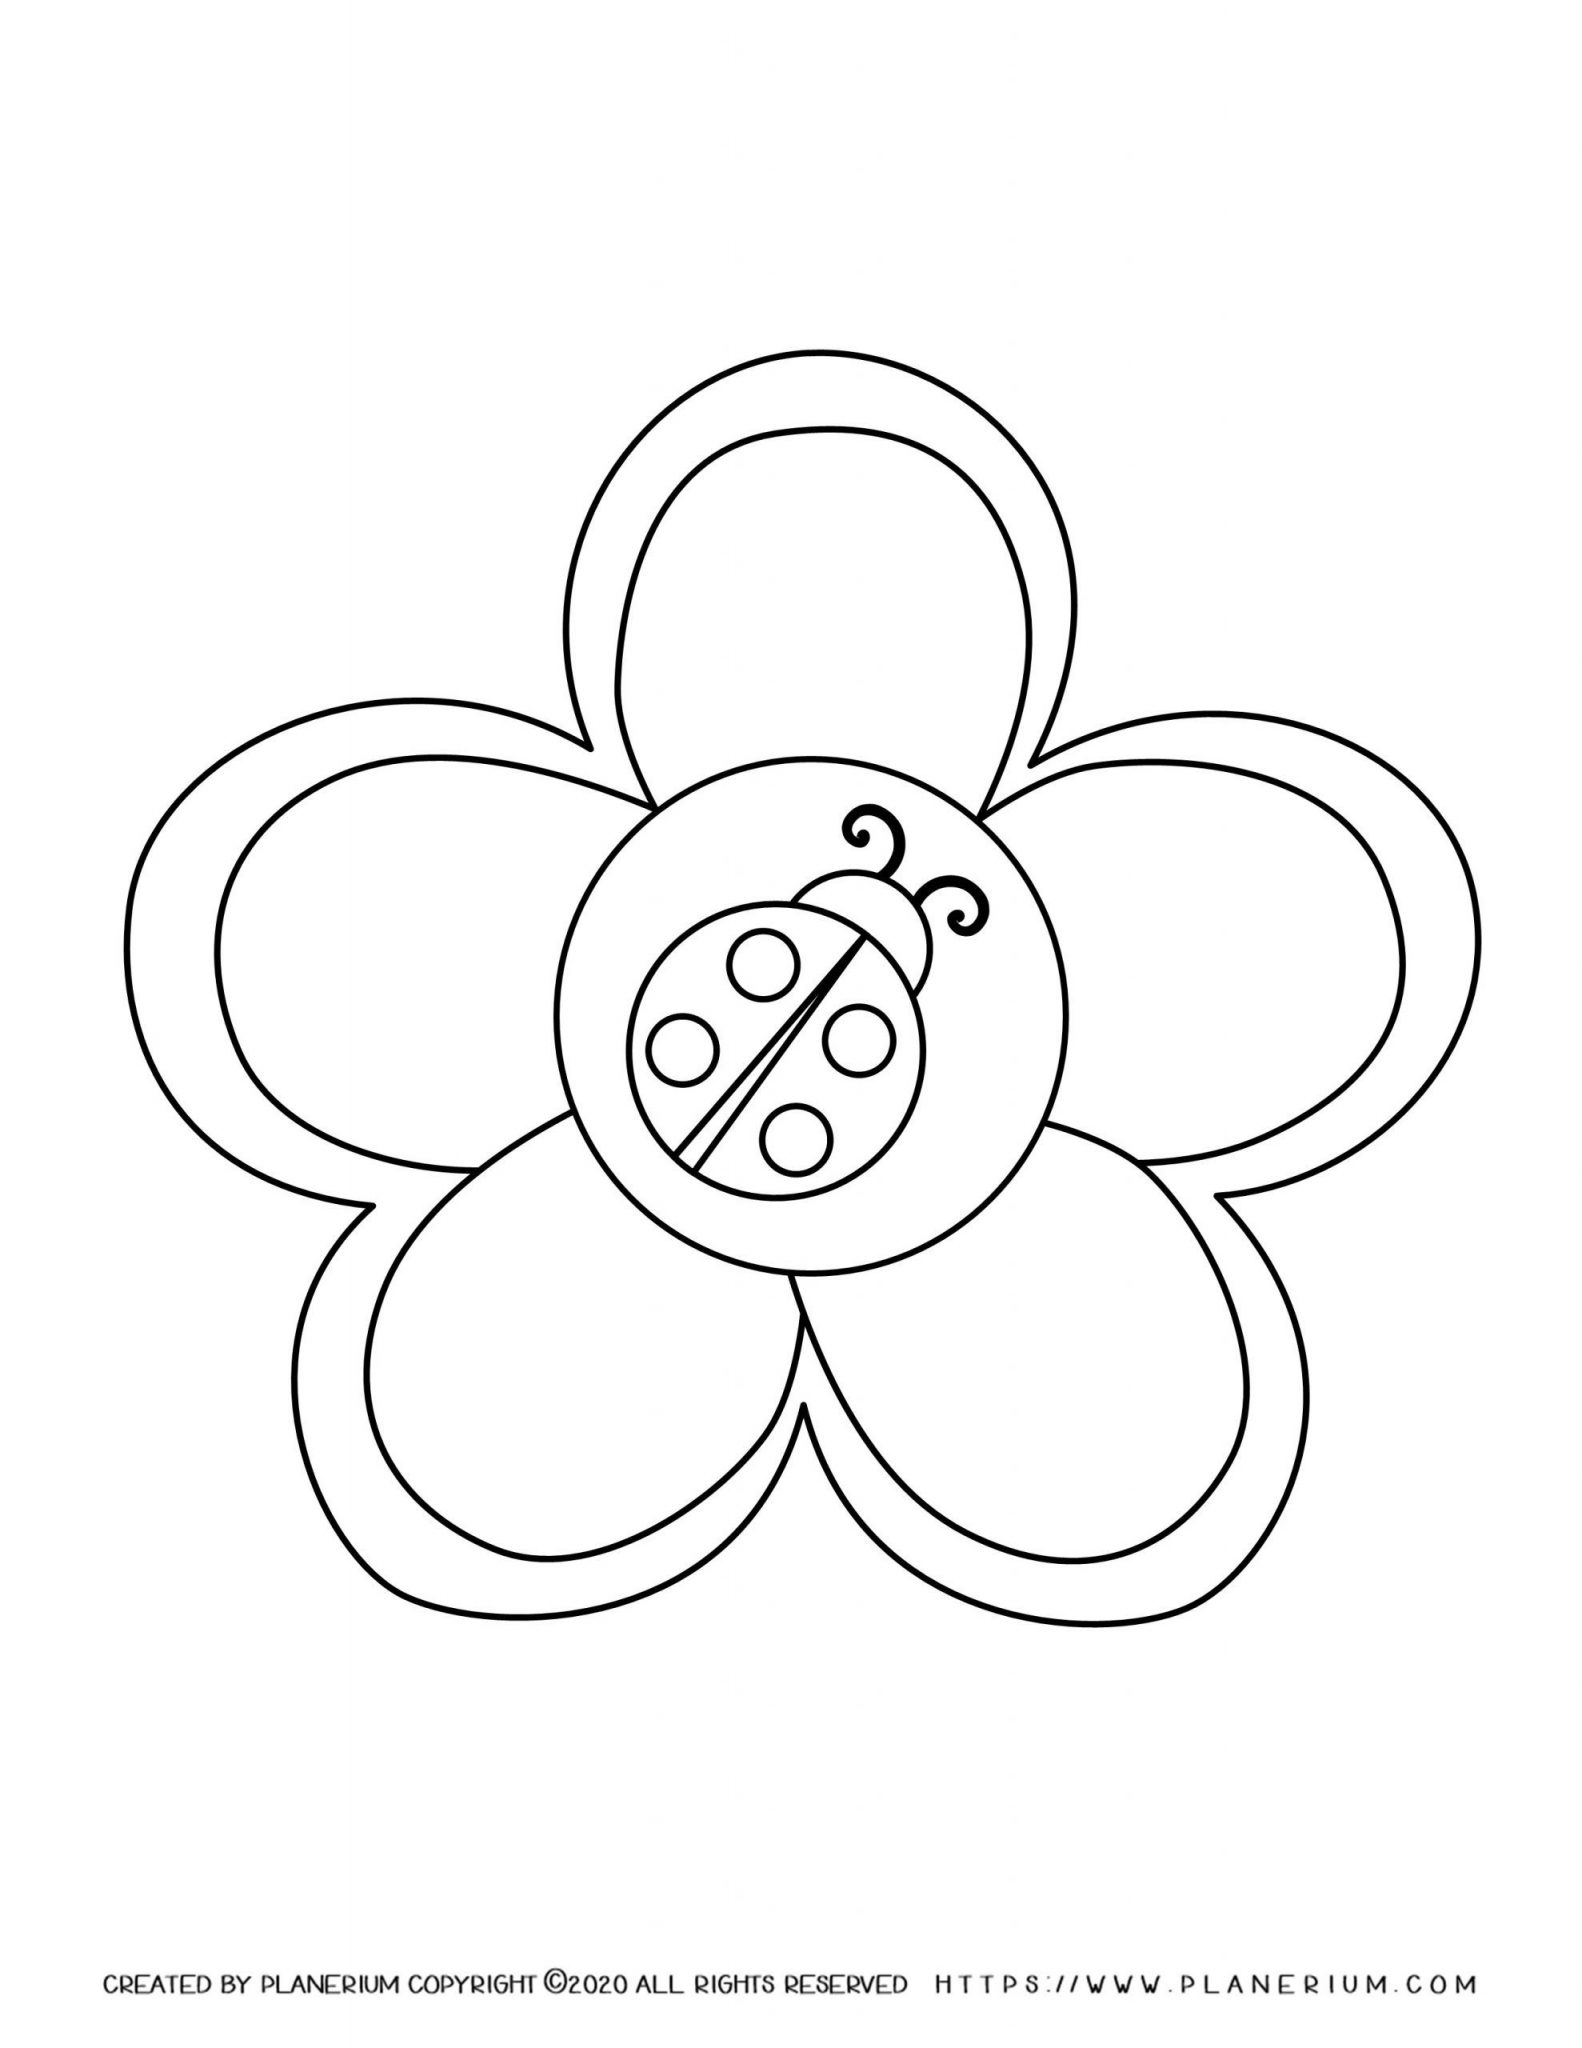 Spring coloring page - Flower with a Ladybug